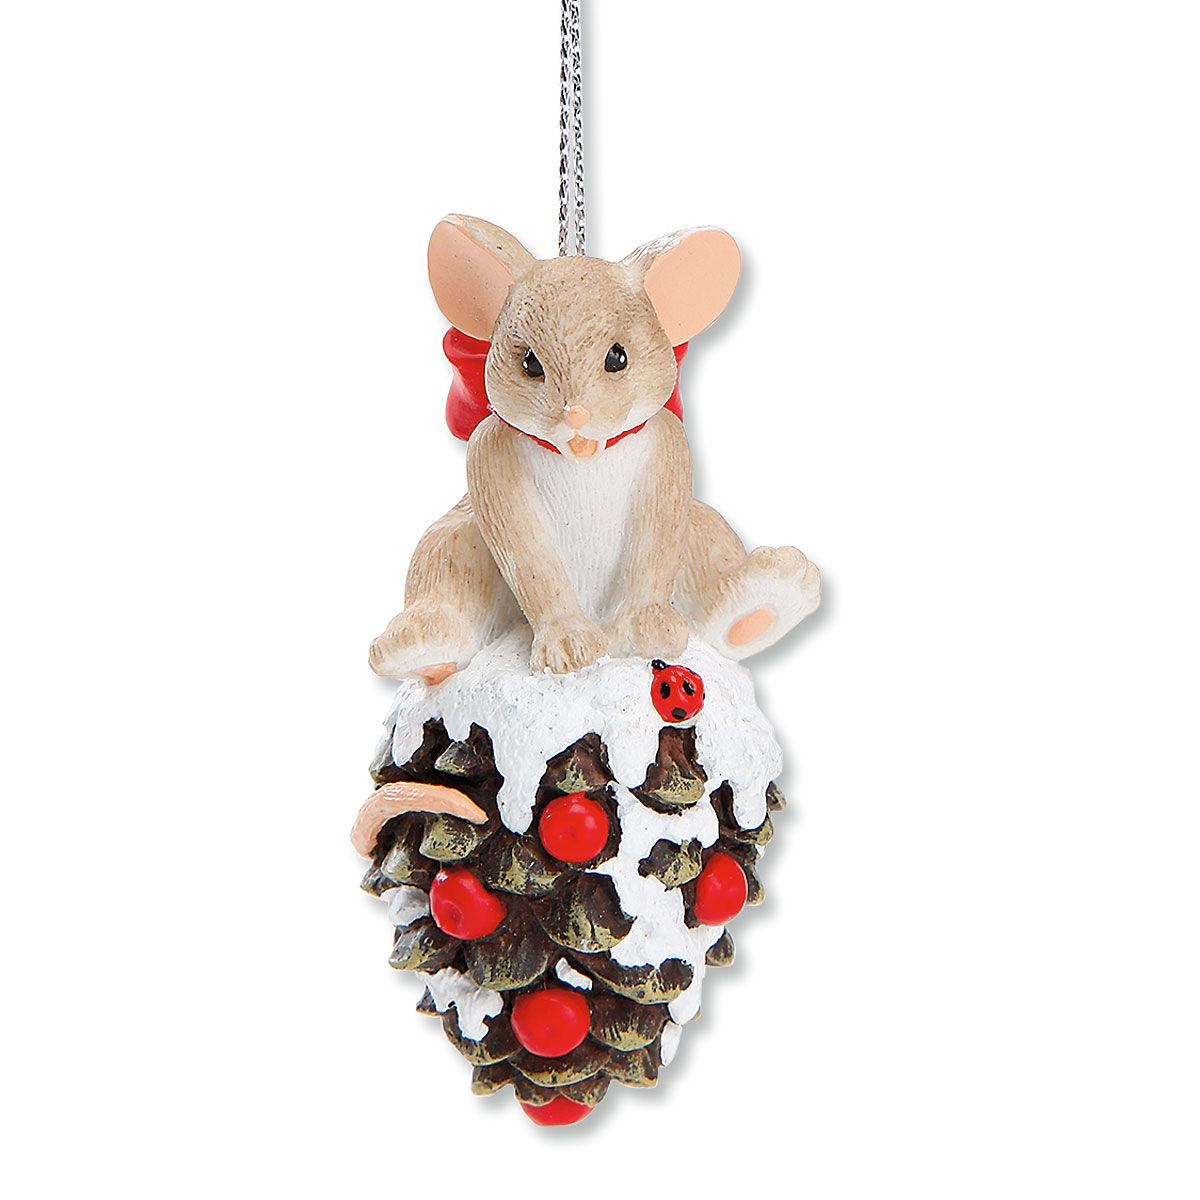 Mouse on a Pinecone Ornament by Charming Tails®